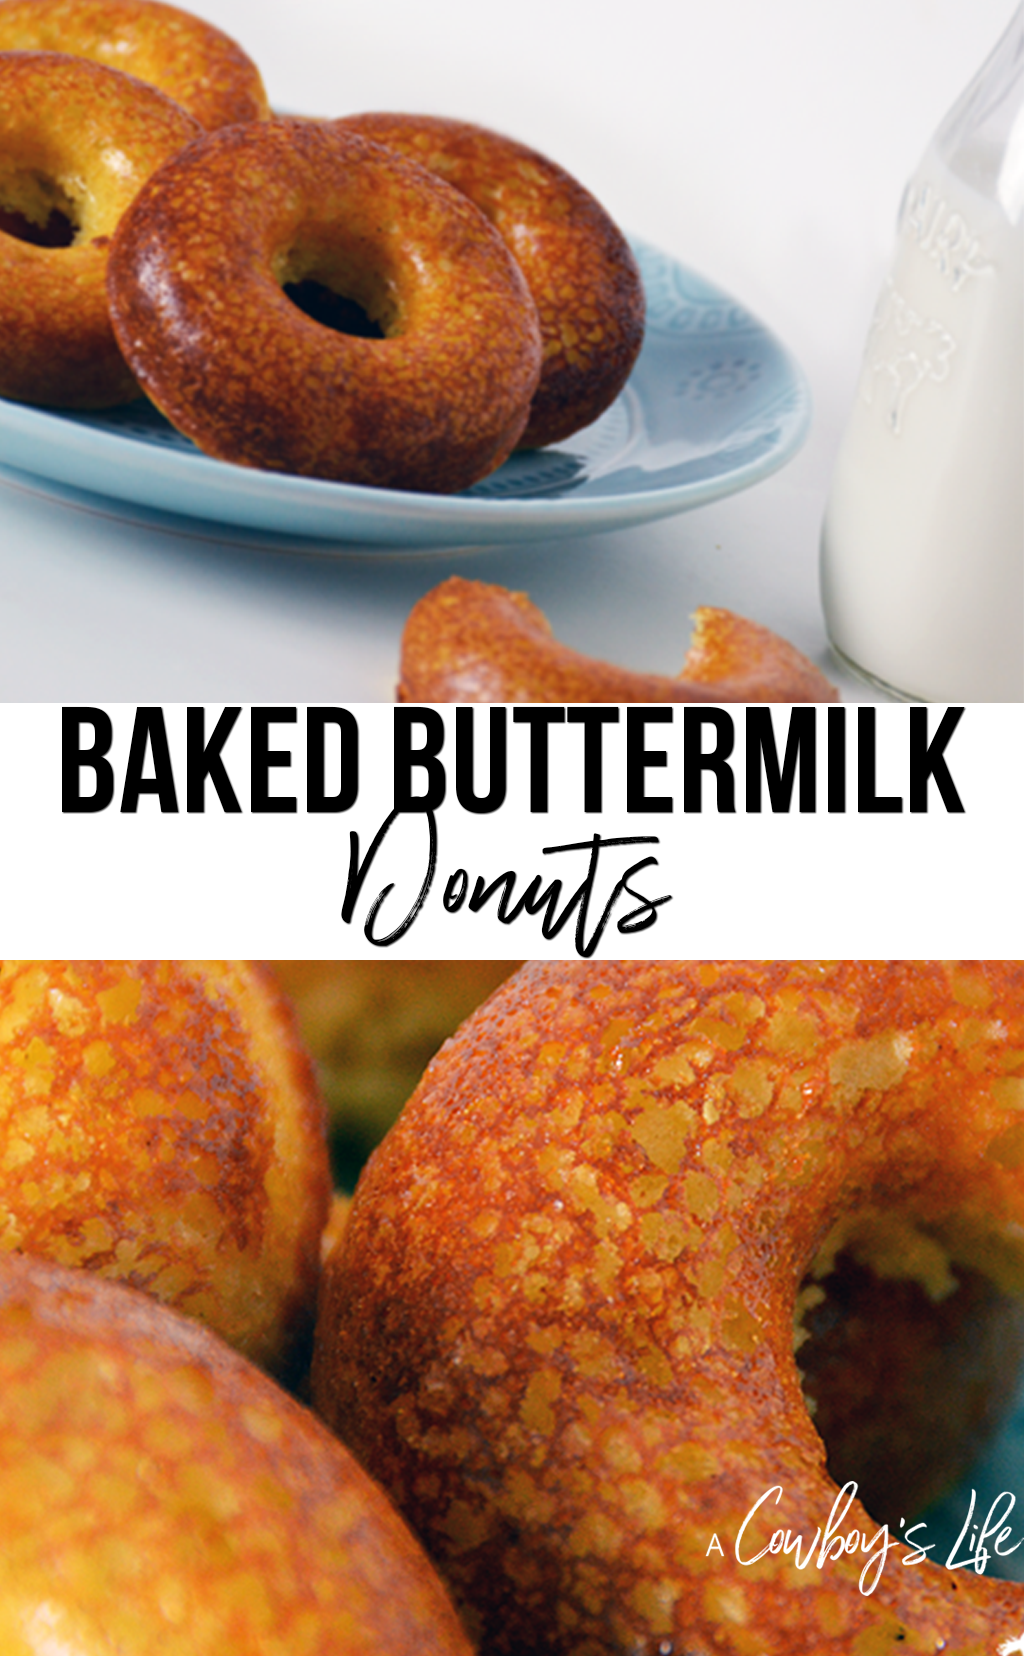 How to make baked buttermilk donuts